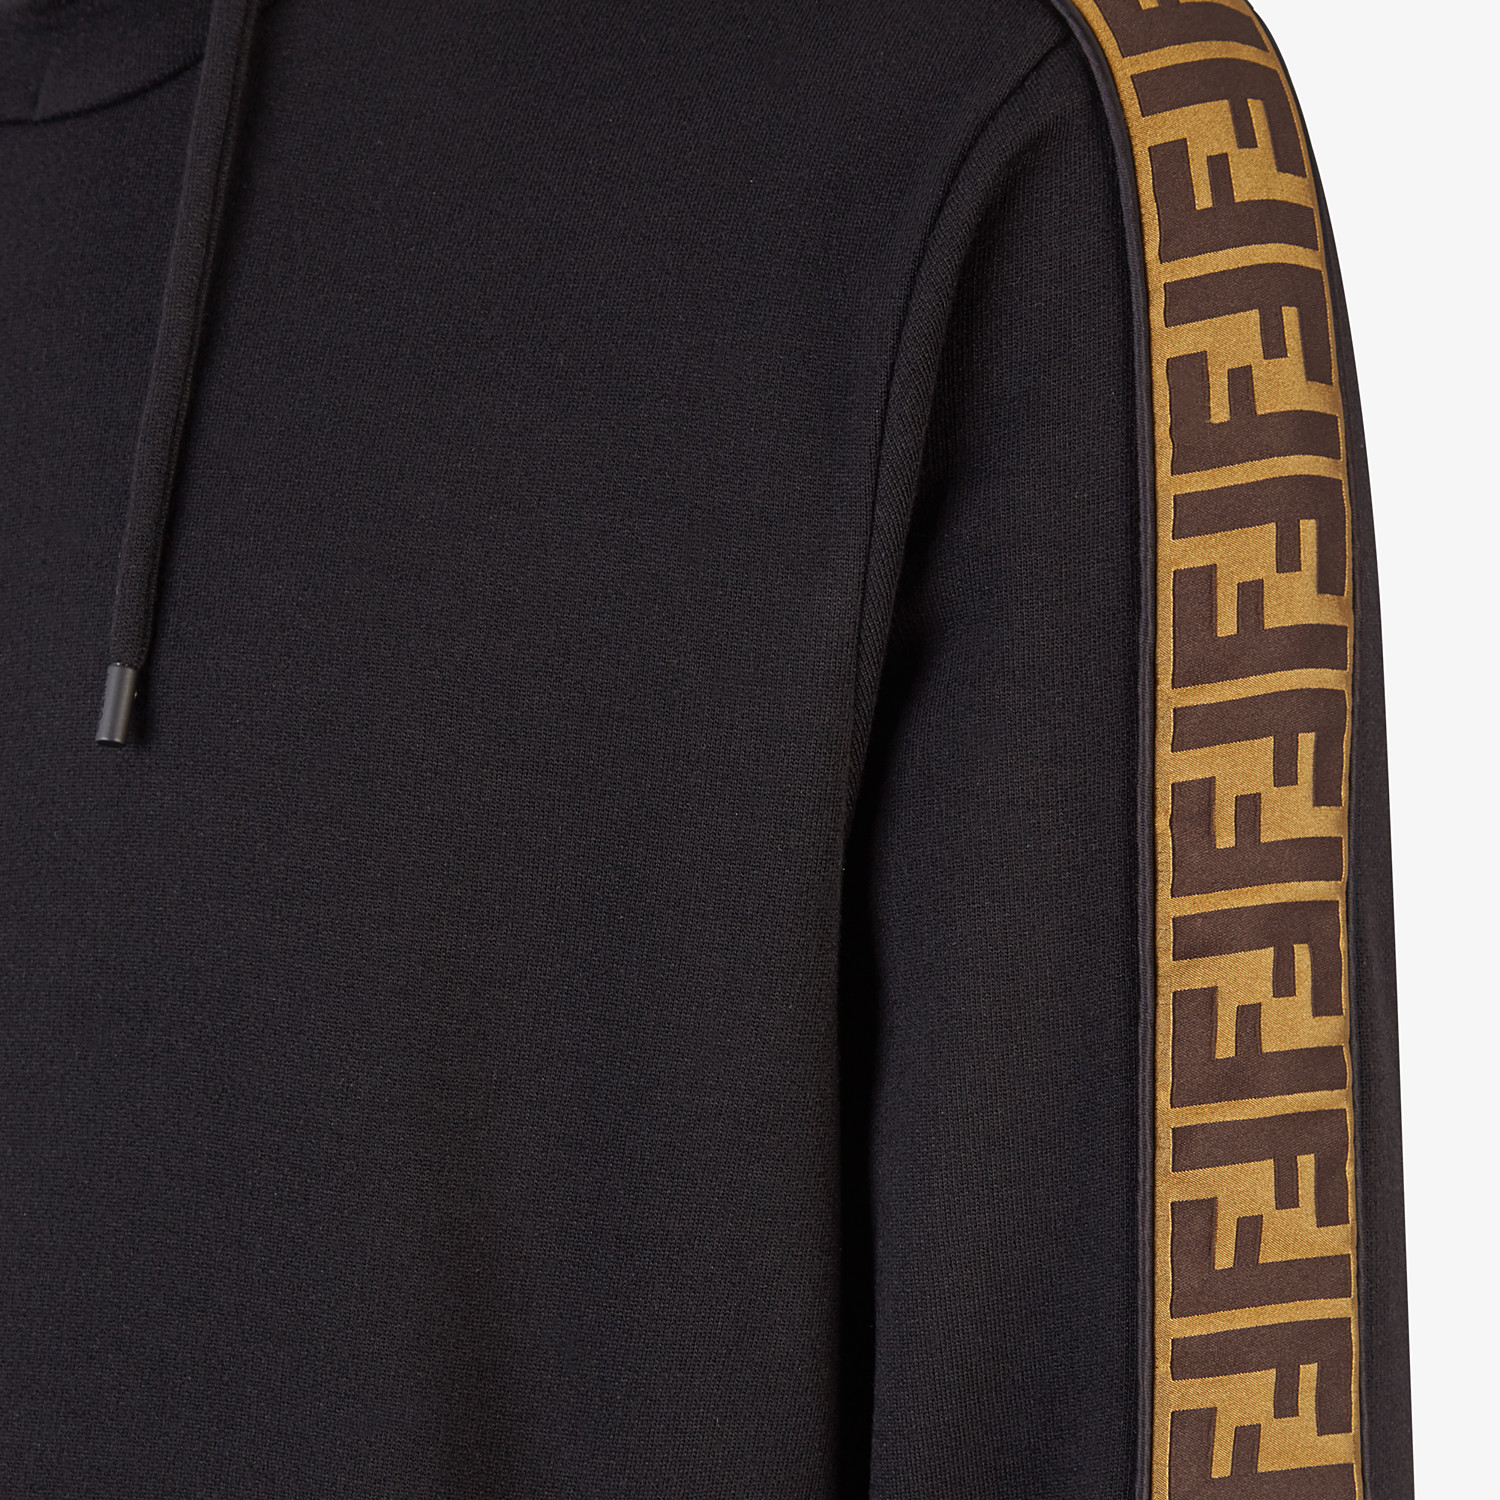 FENDI SWEATSHIRT - Black wool and cotton sweatshirt - view 3 detail